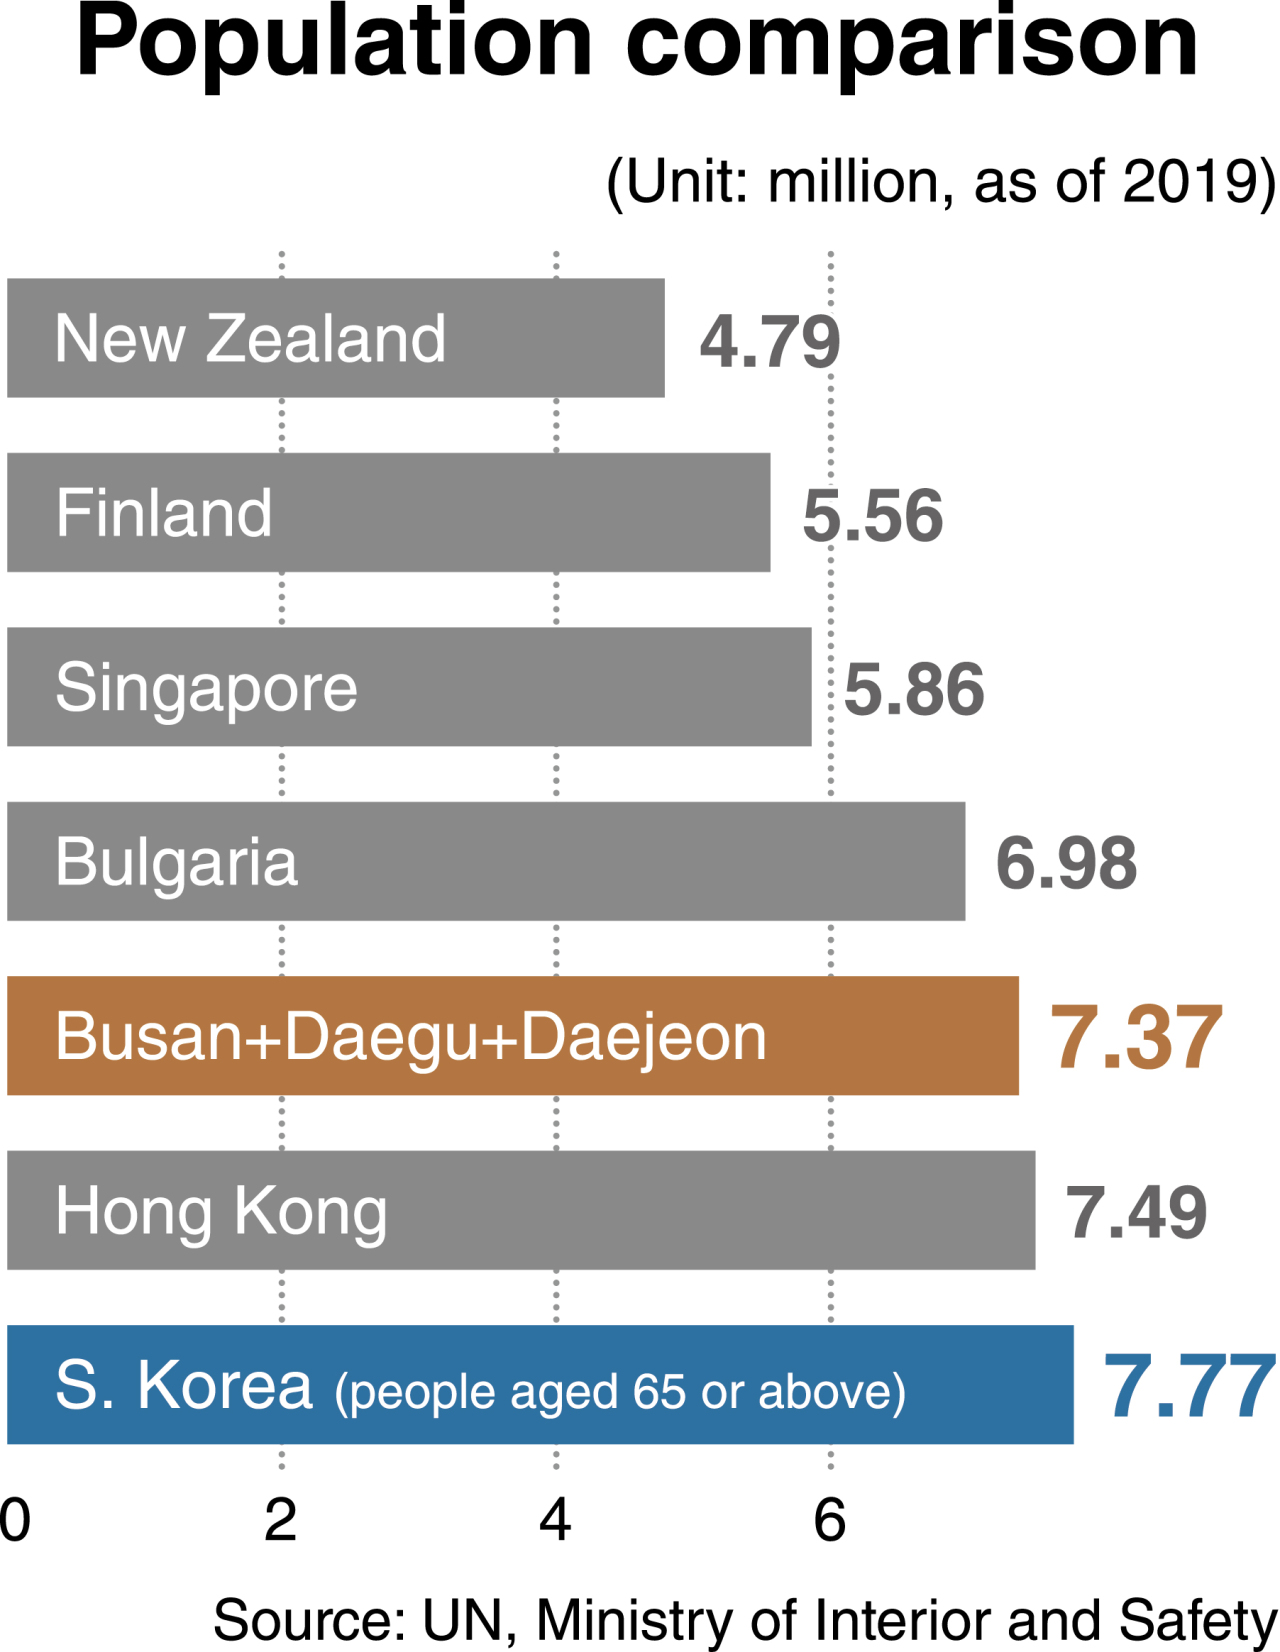 (Graphic by Heo Tae-seong/The Korea Herald)